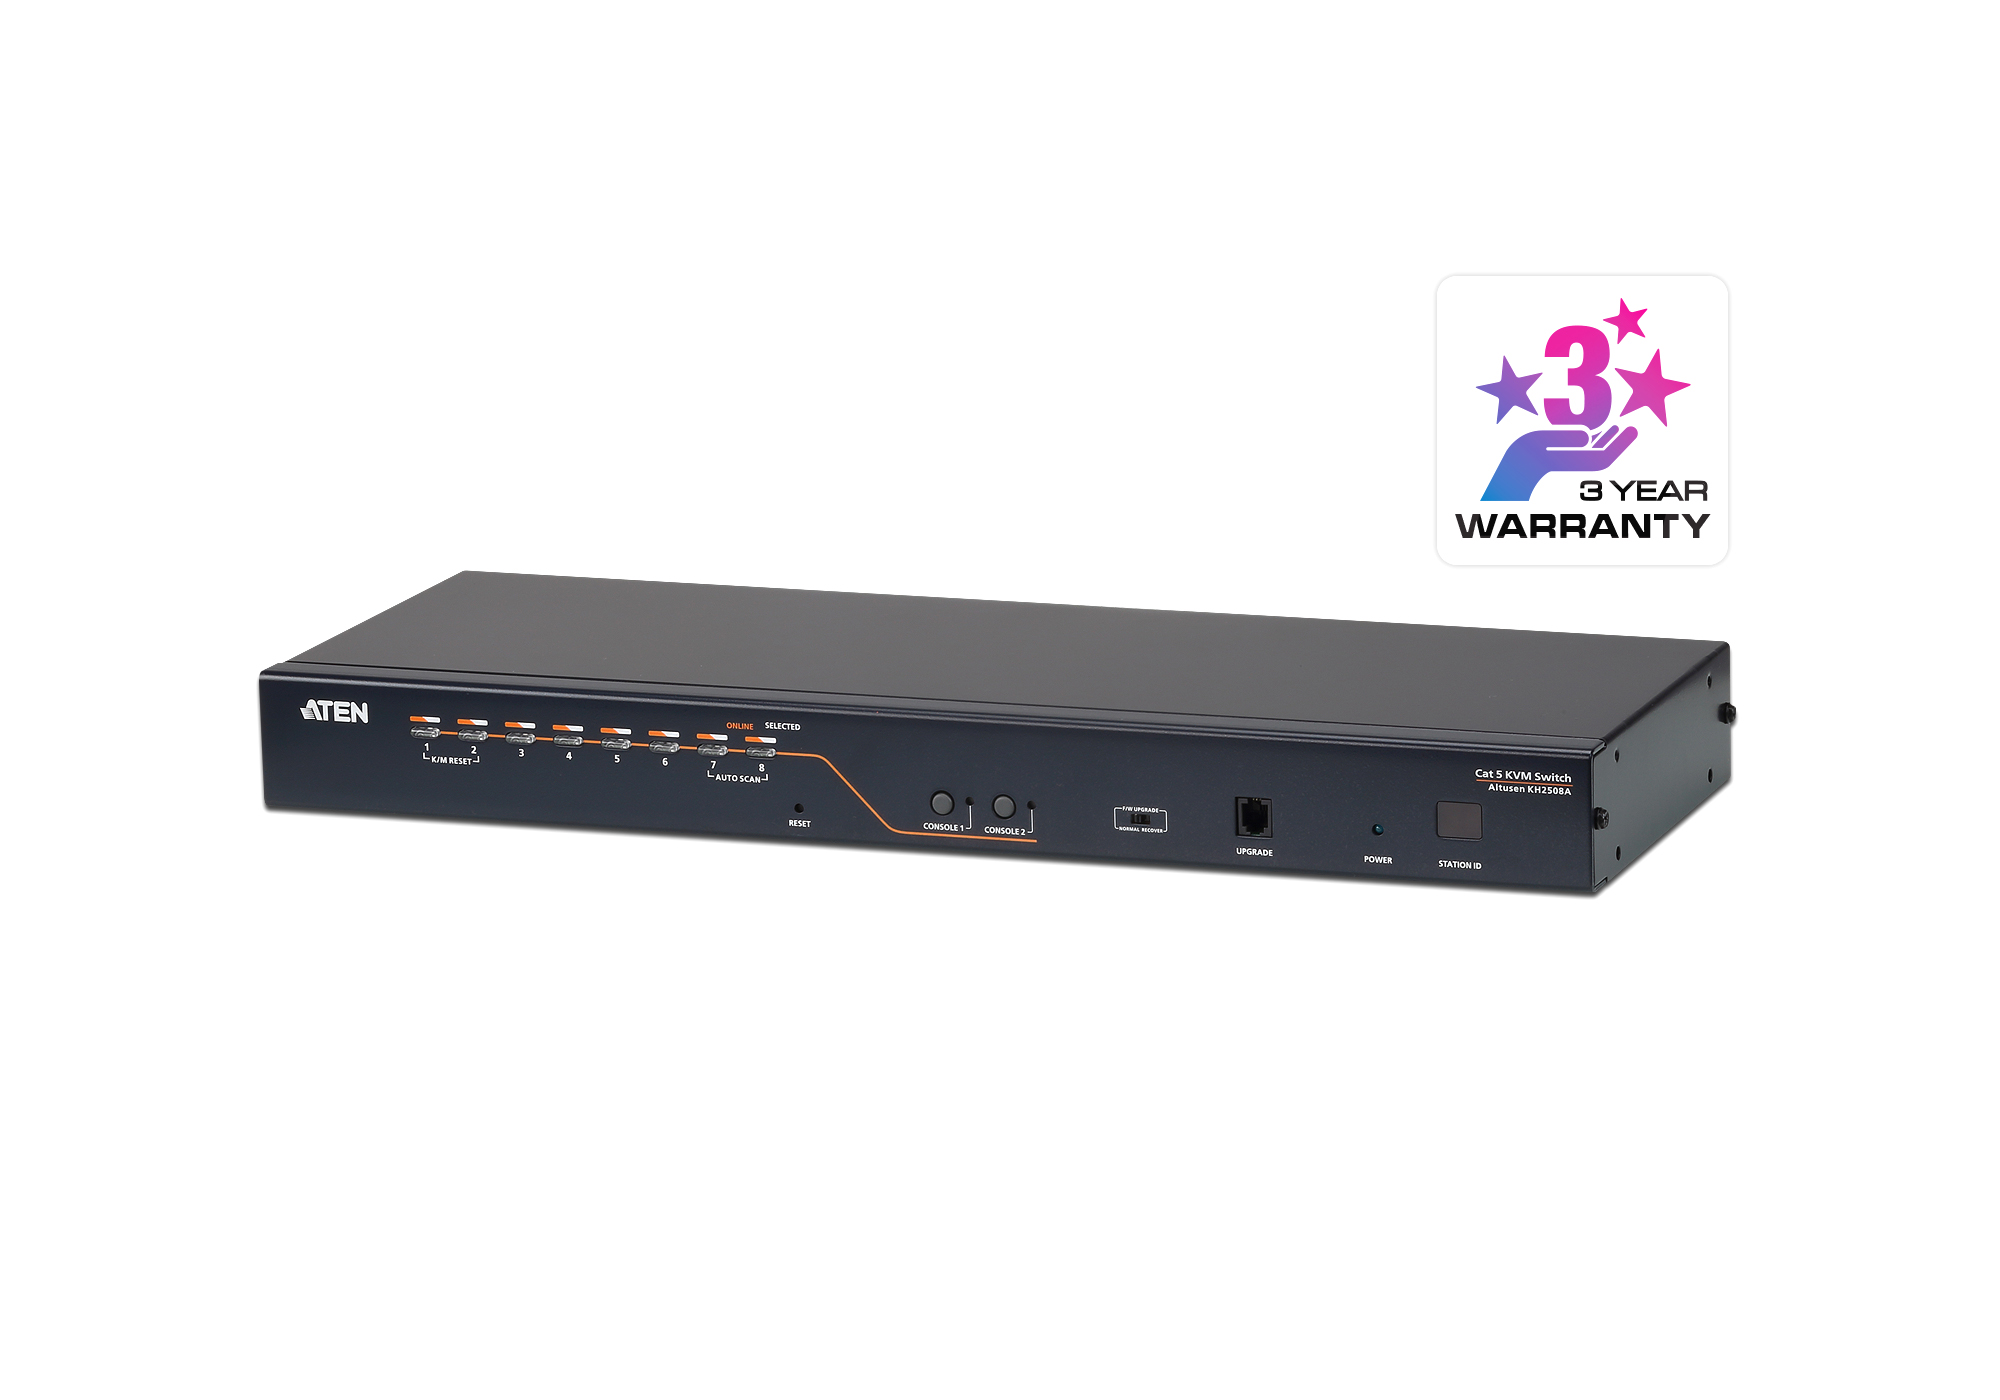 2-Console 8-Port Cat 5 KVM Switch with Daisy-Chain Port-1